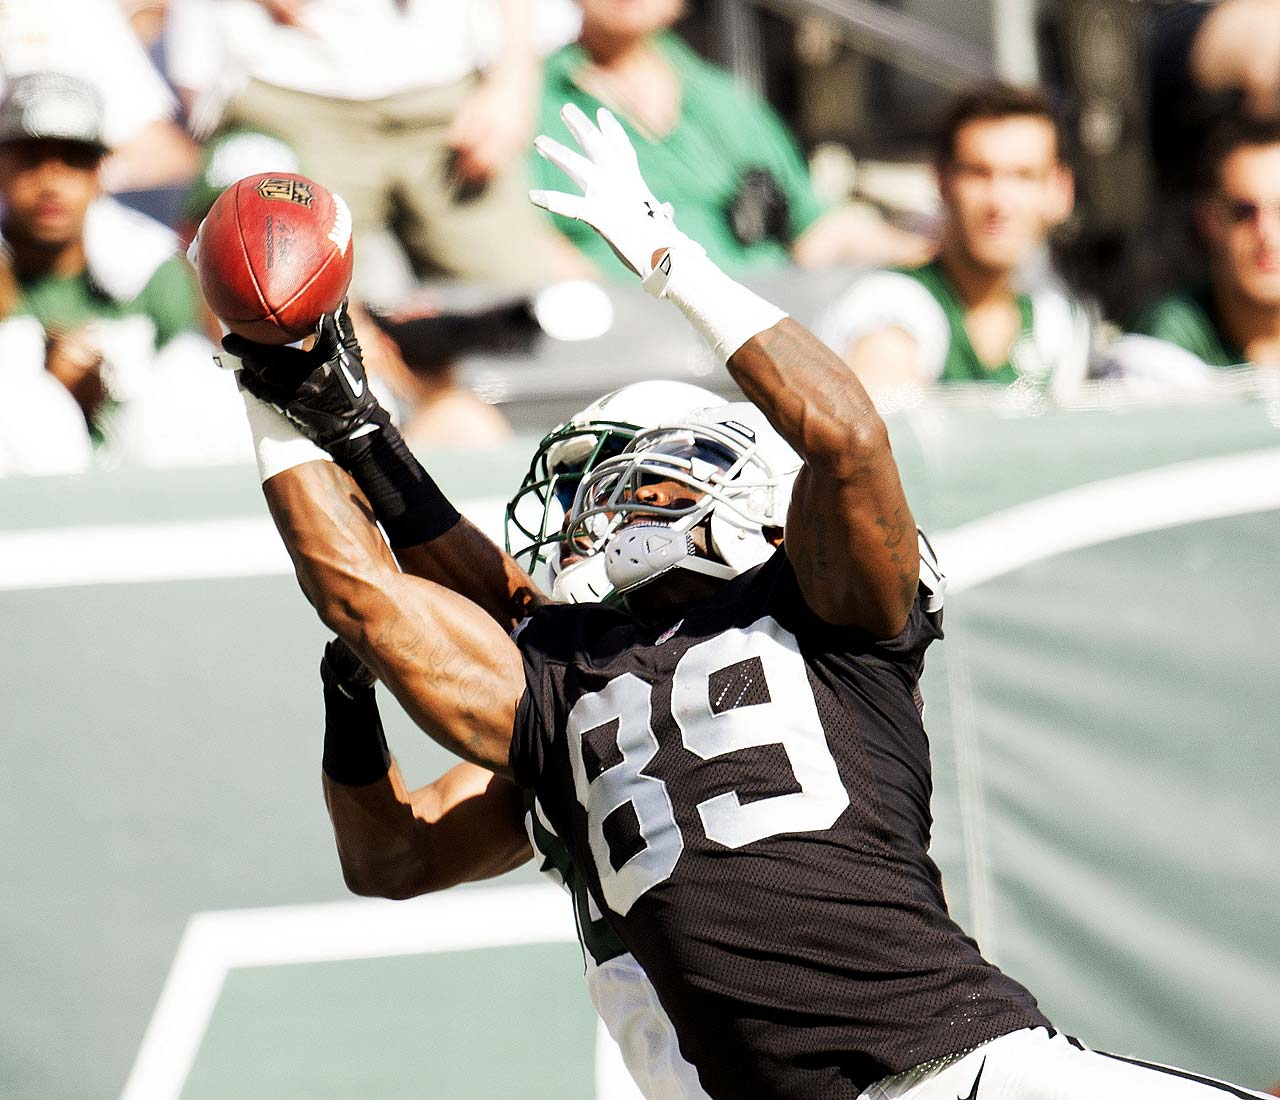 In his first game as a Raider, James Jones made three grabs for 36 yards and scored once.